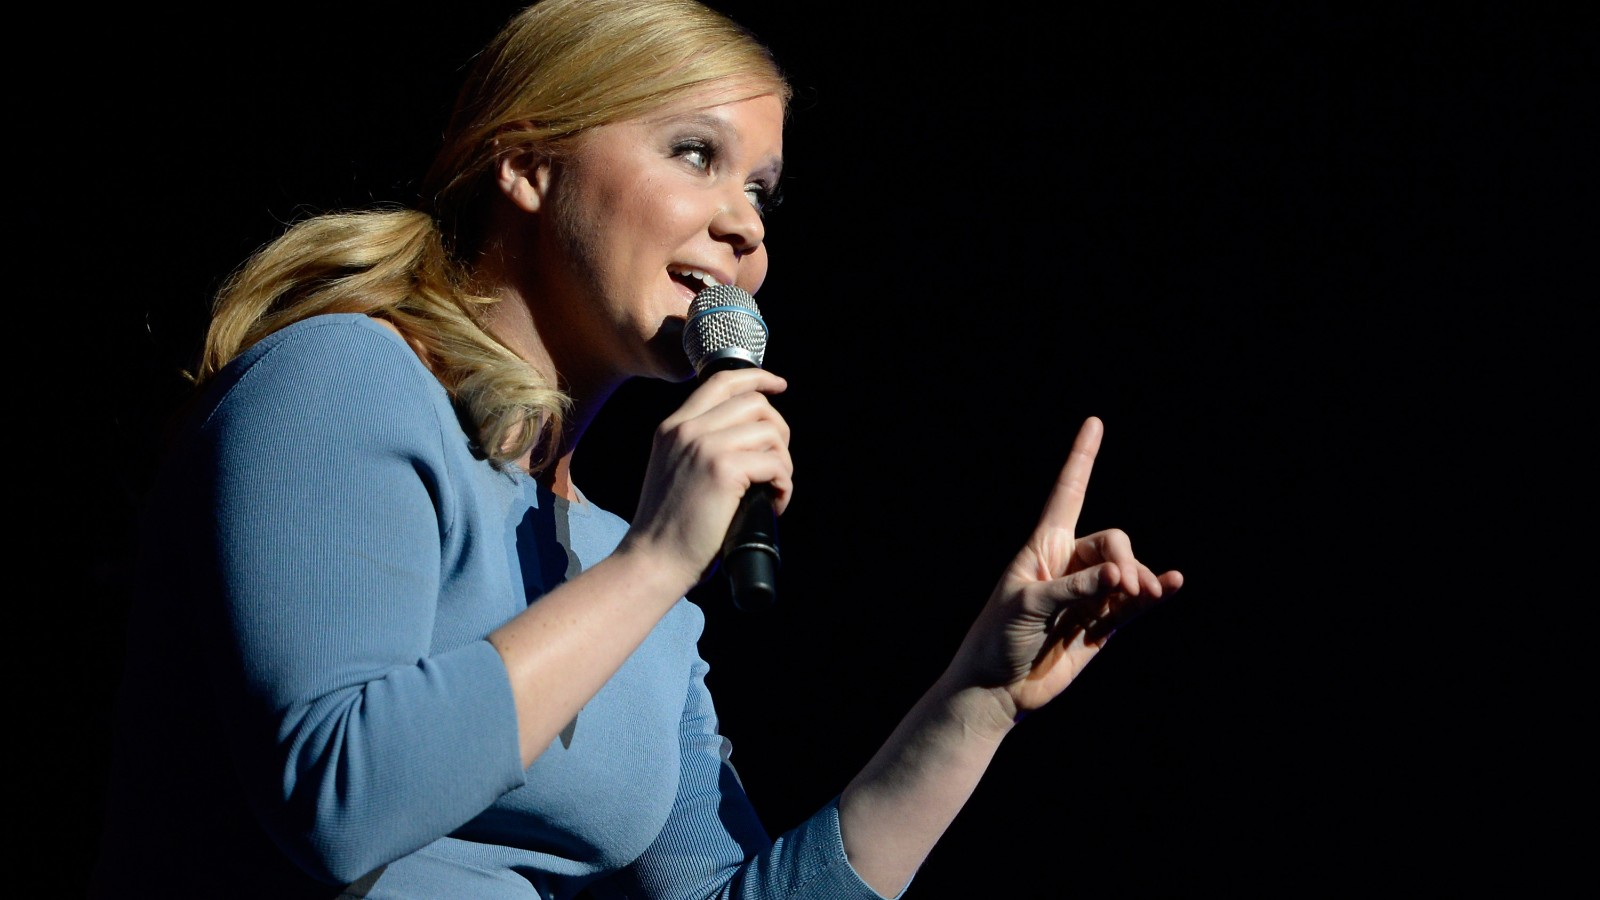 Amy Schumer Tit Pics amy schumer to glamour: i'm not plus-size - cnn